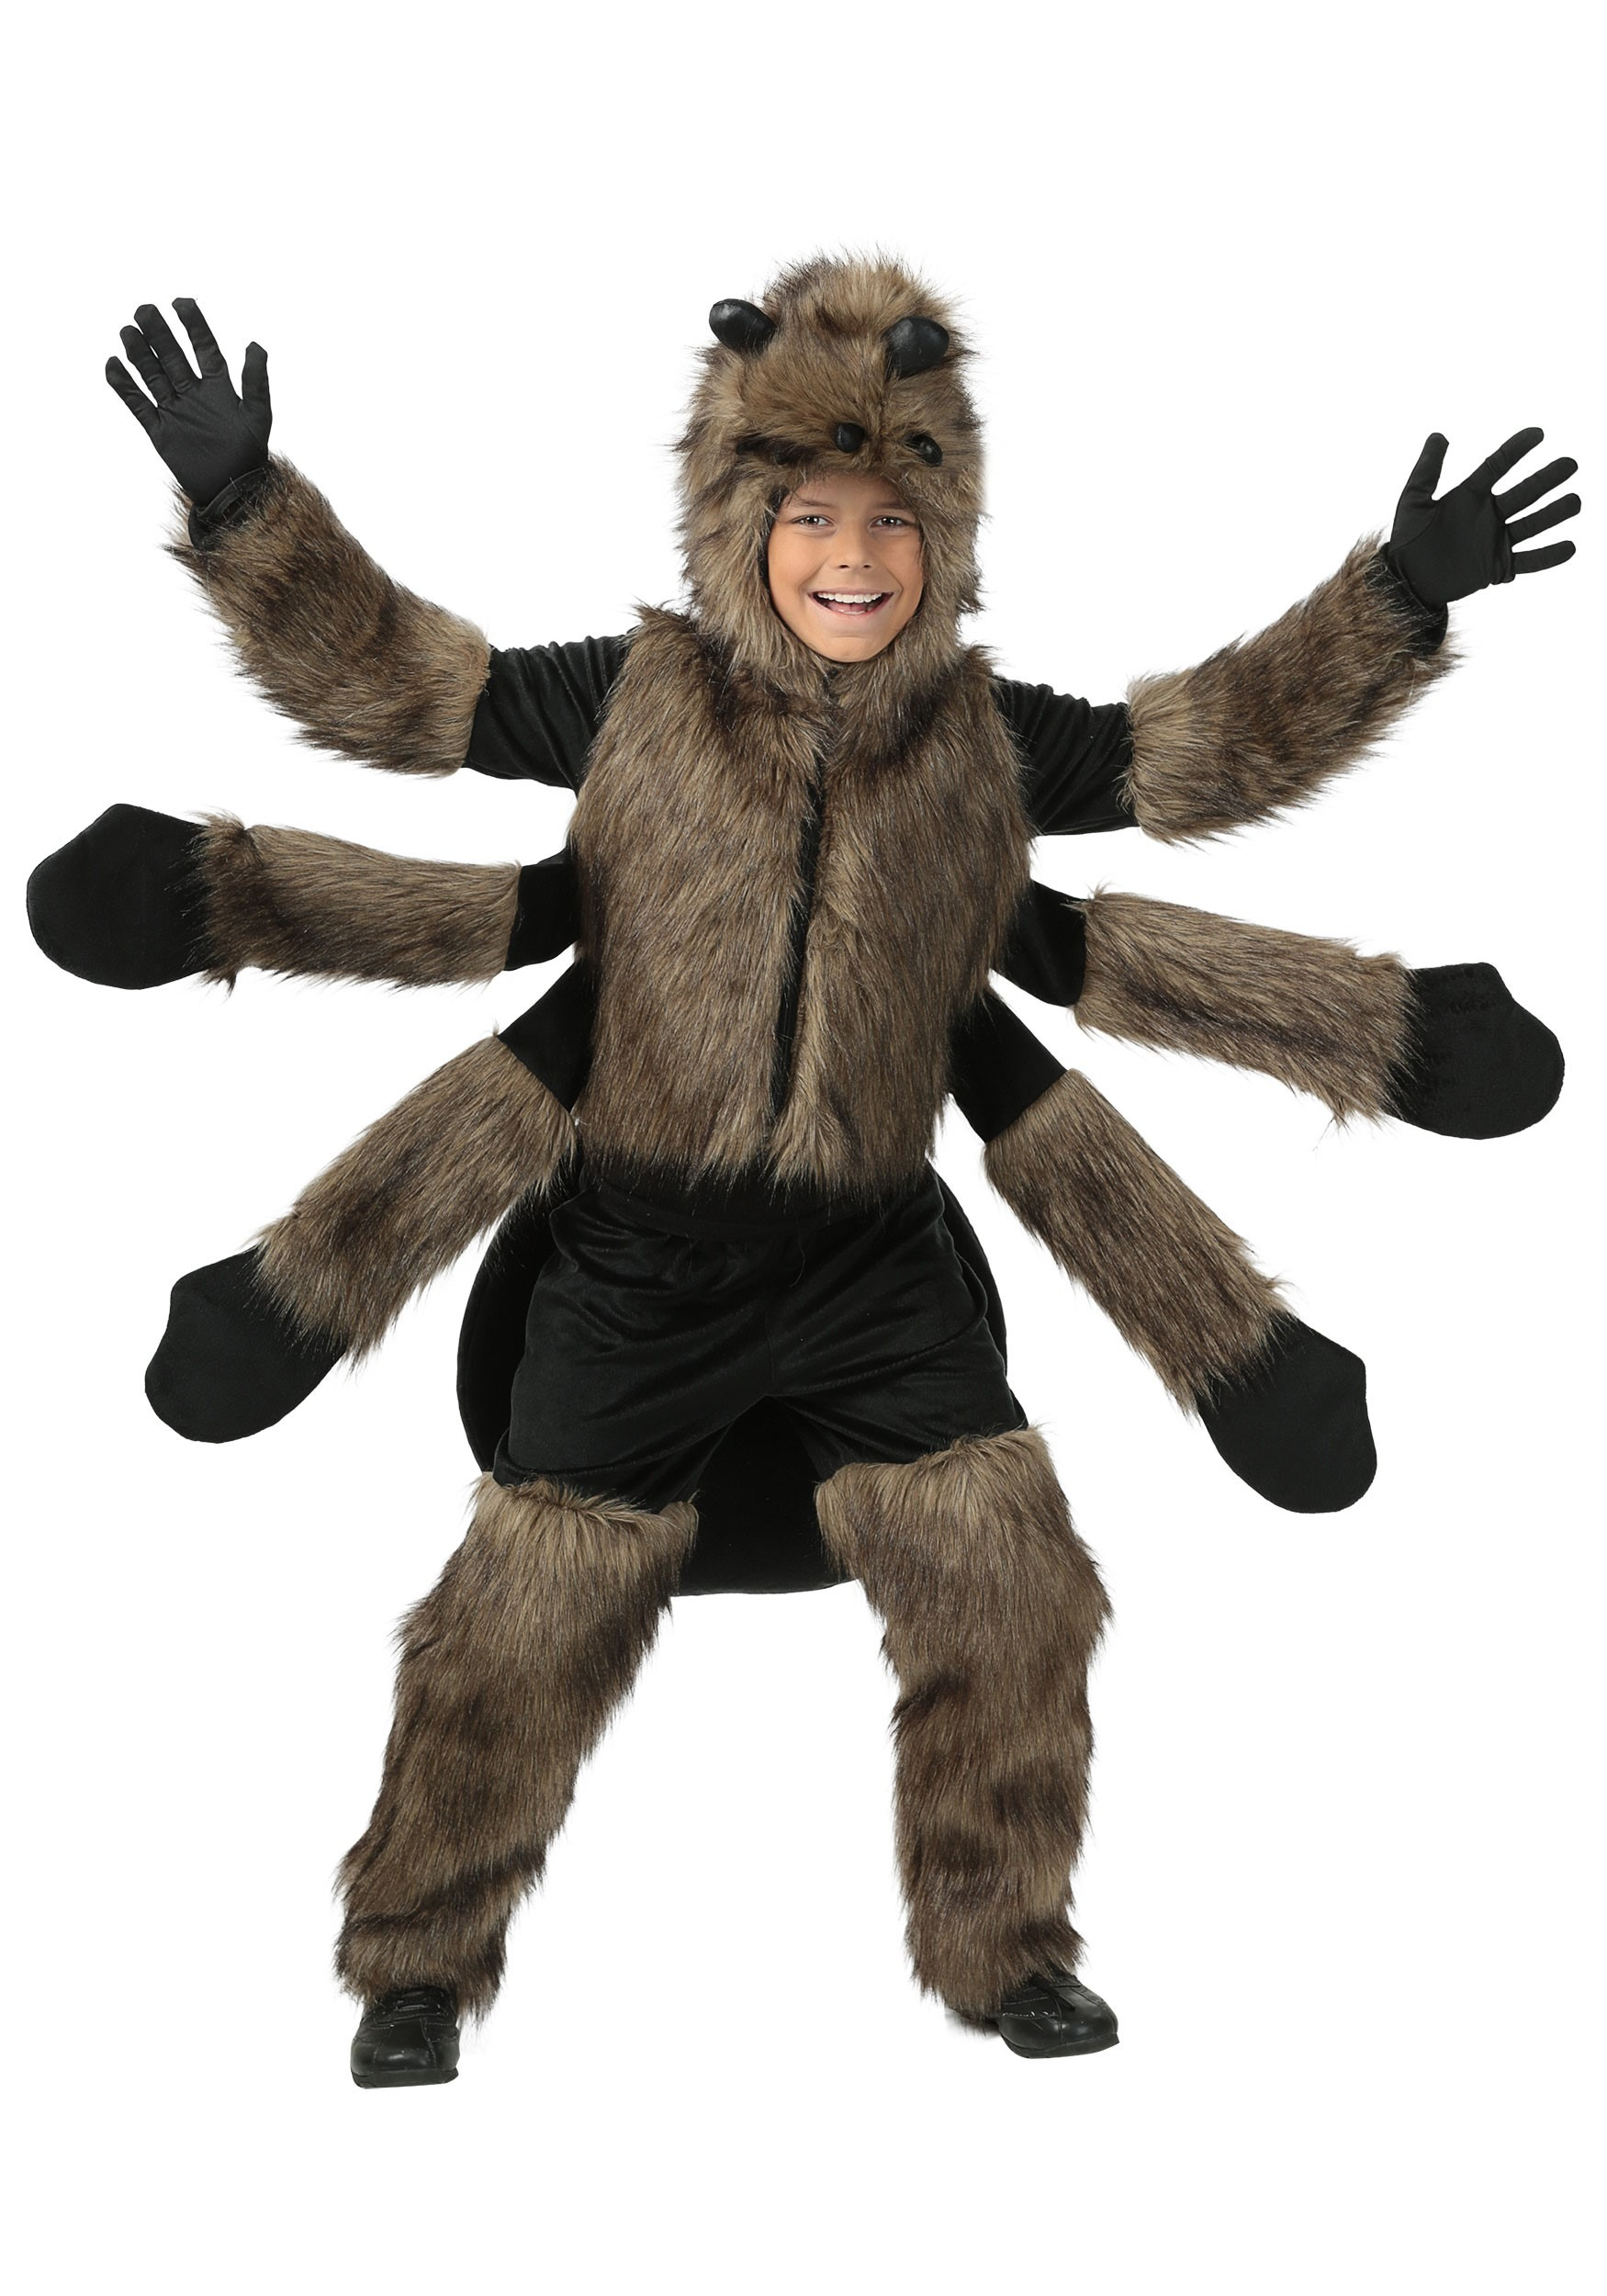 Furry Spider Costume for Kids